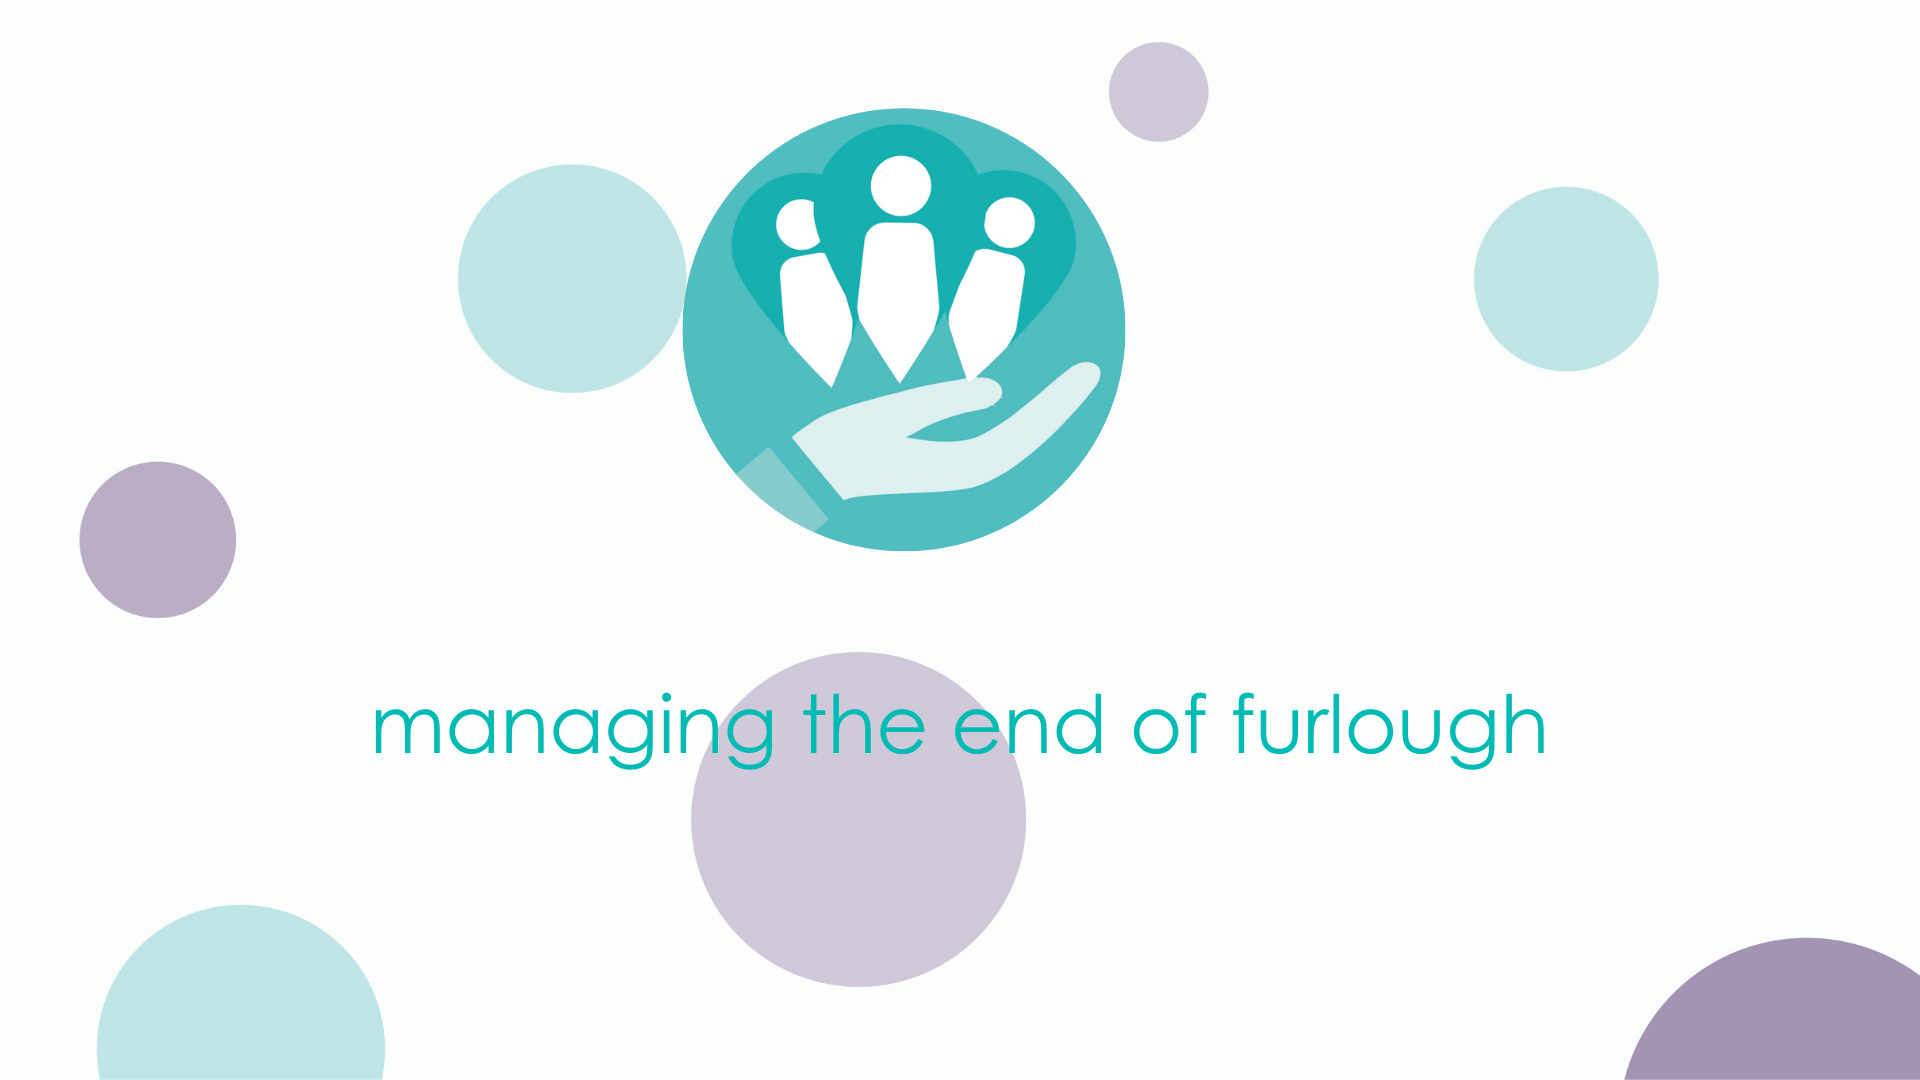 managing the end of furlough